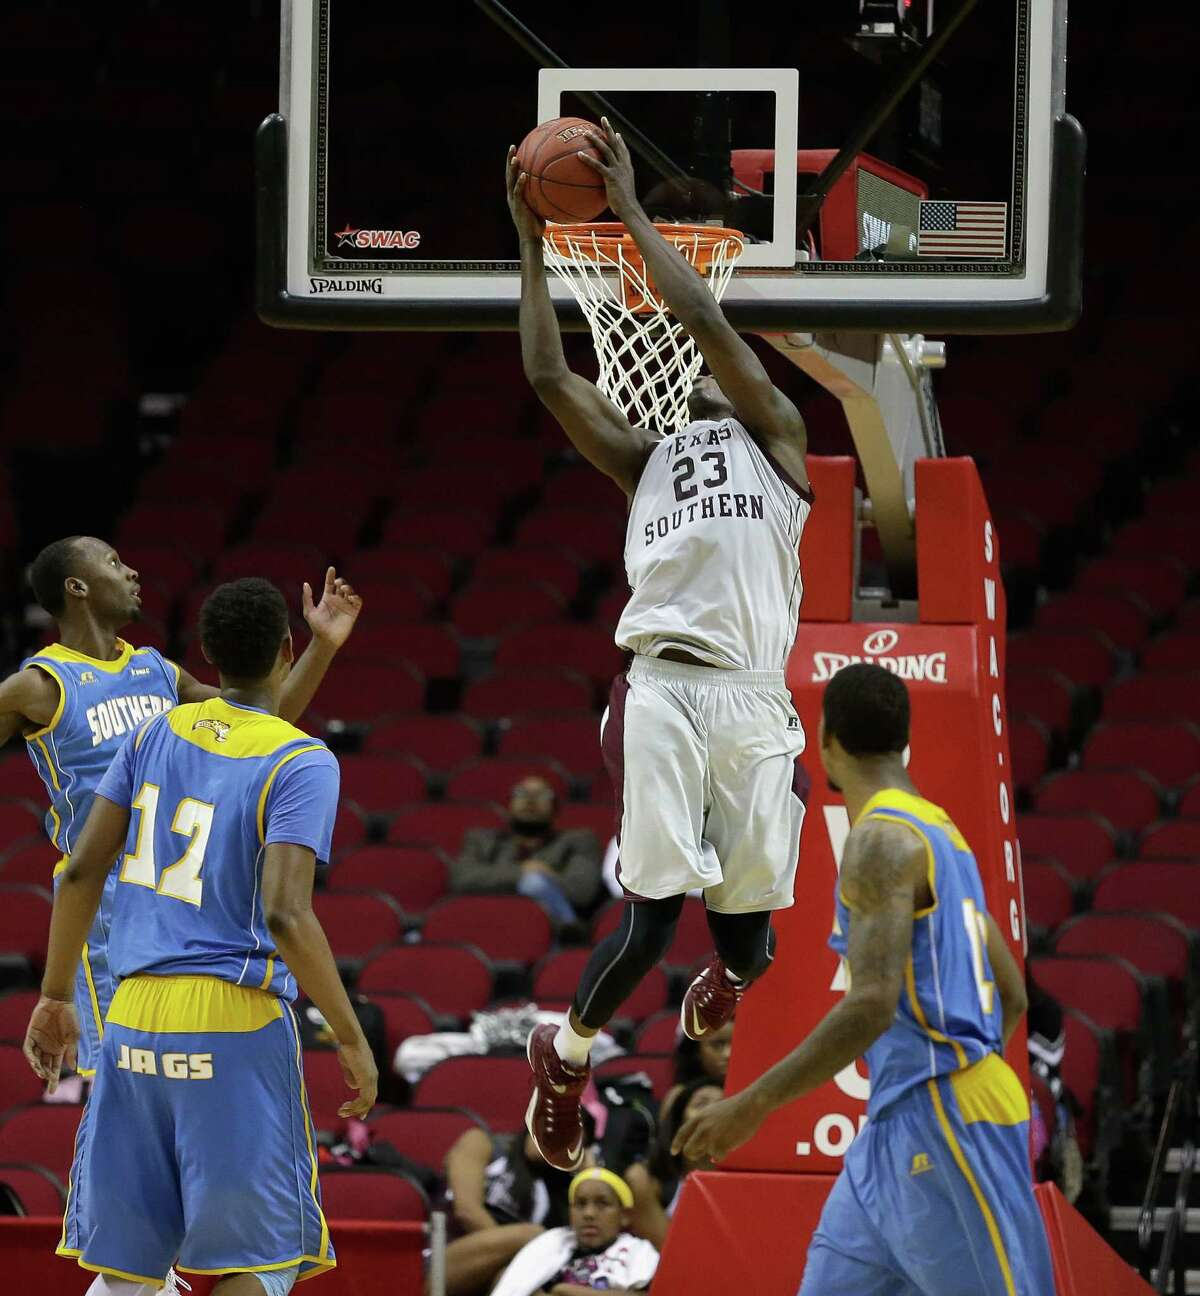 Texas Southern Tigers forward Derrick Griffin (23) misses a dunk on a pass from the perimeter as Southern University Jaguars forward Jared Sam (12) looks on during the SWAC basketball tournament Friday, March 11, 2016 at the Toyota Center in Houston.